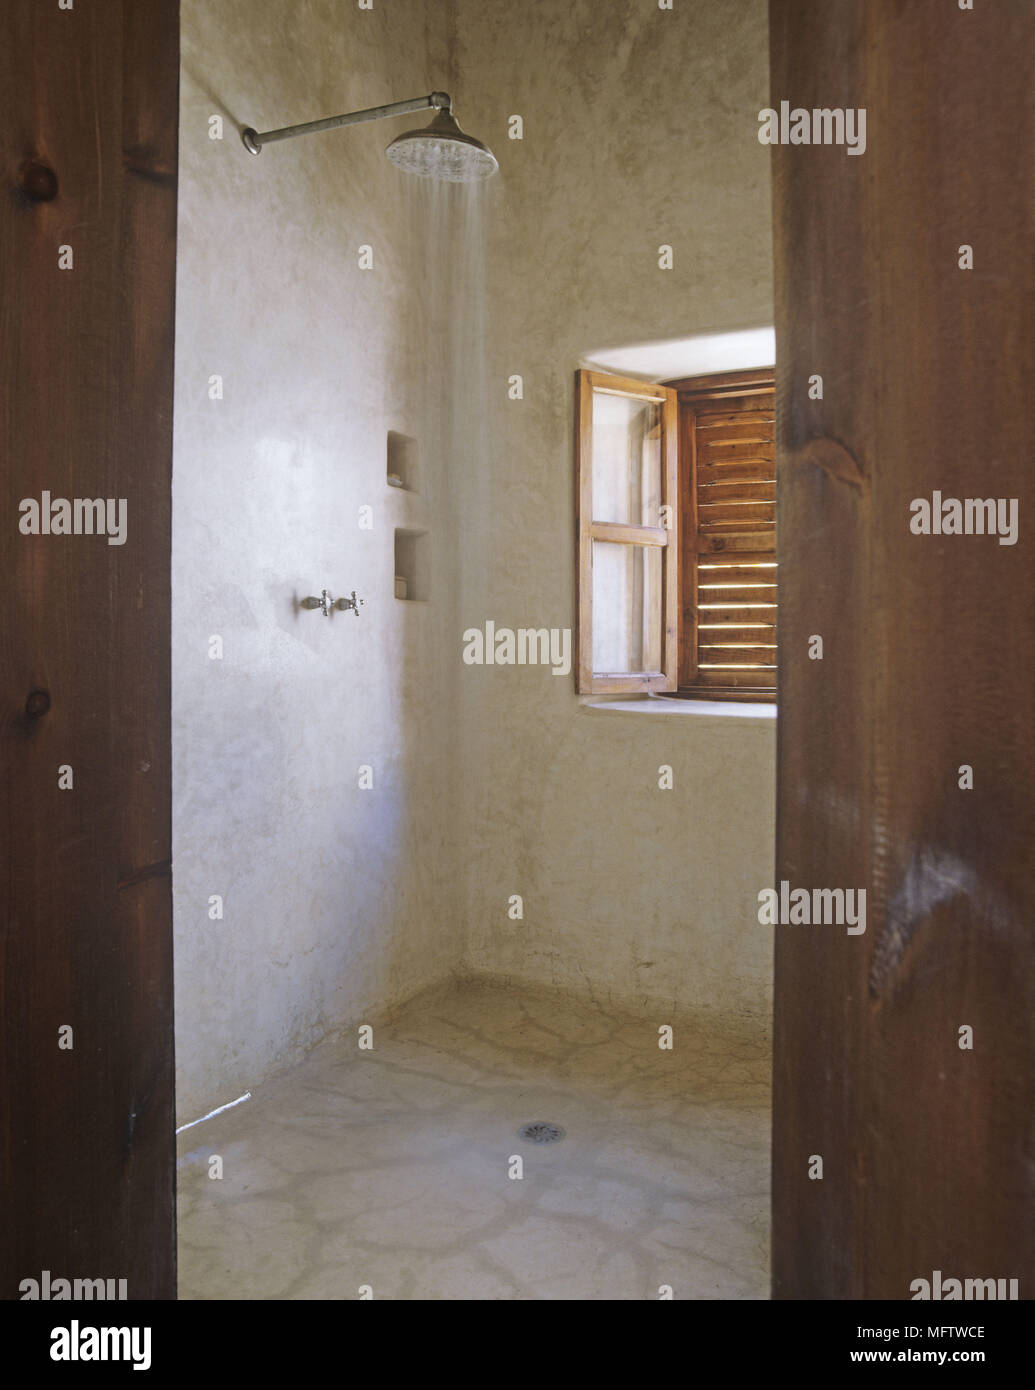 Groovy A Rustic Stone Shower Wet Room Window Shutters Stock Photo Download Free Architecture Designs Scobabritishbridgeorg